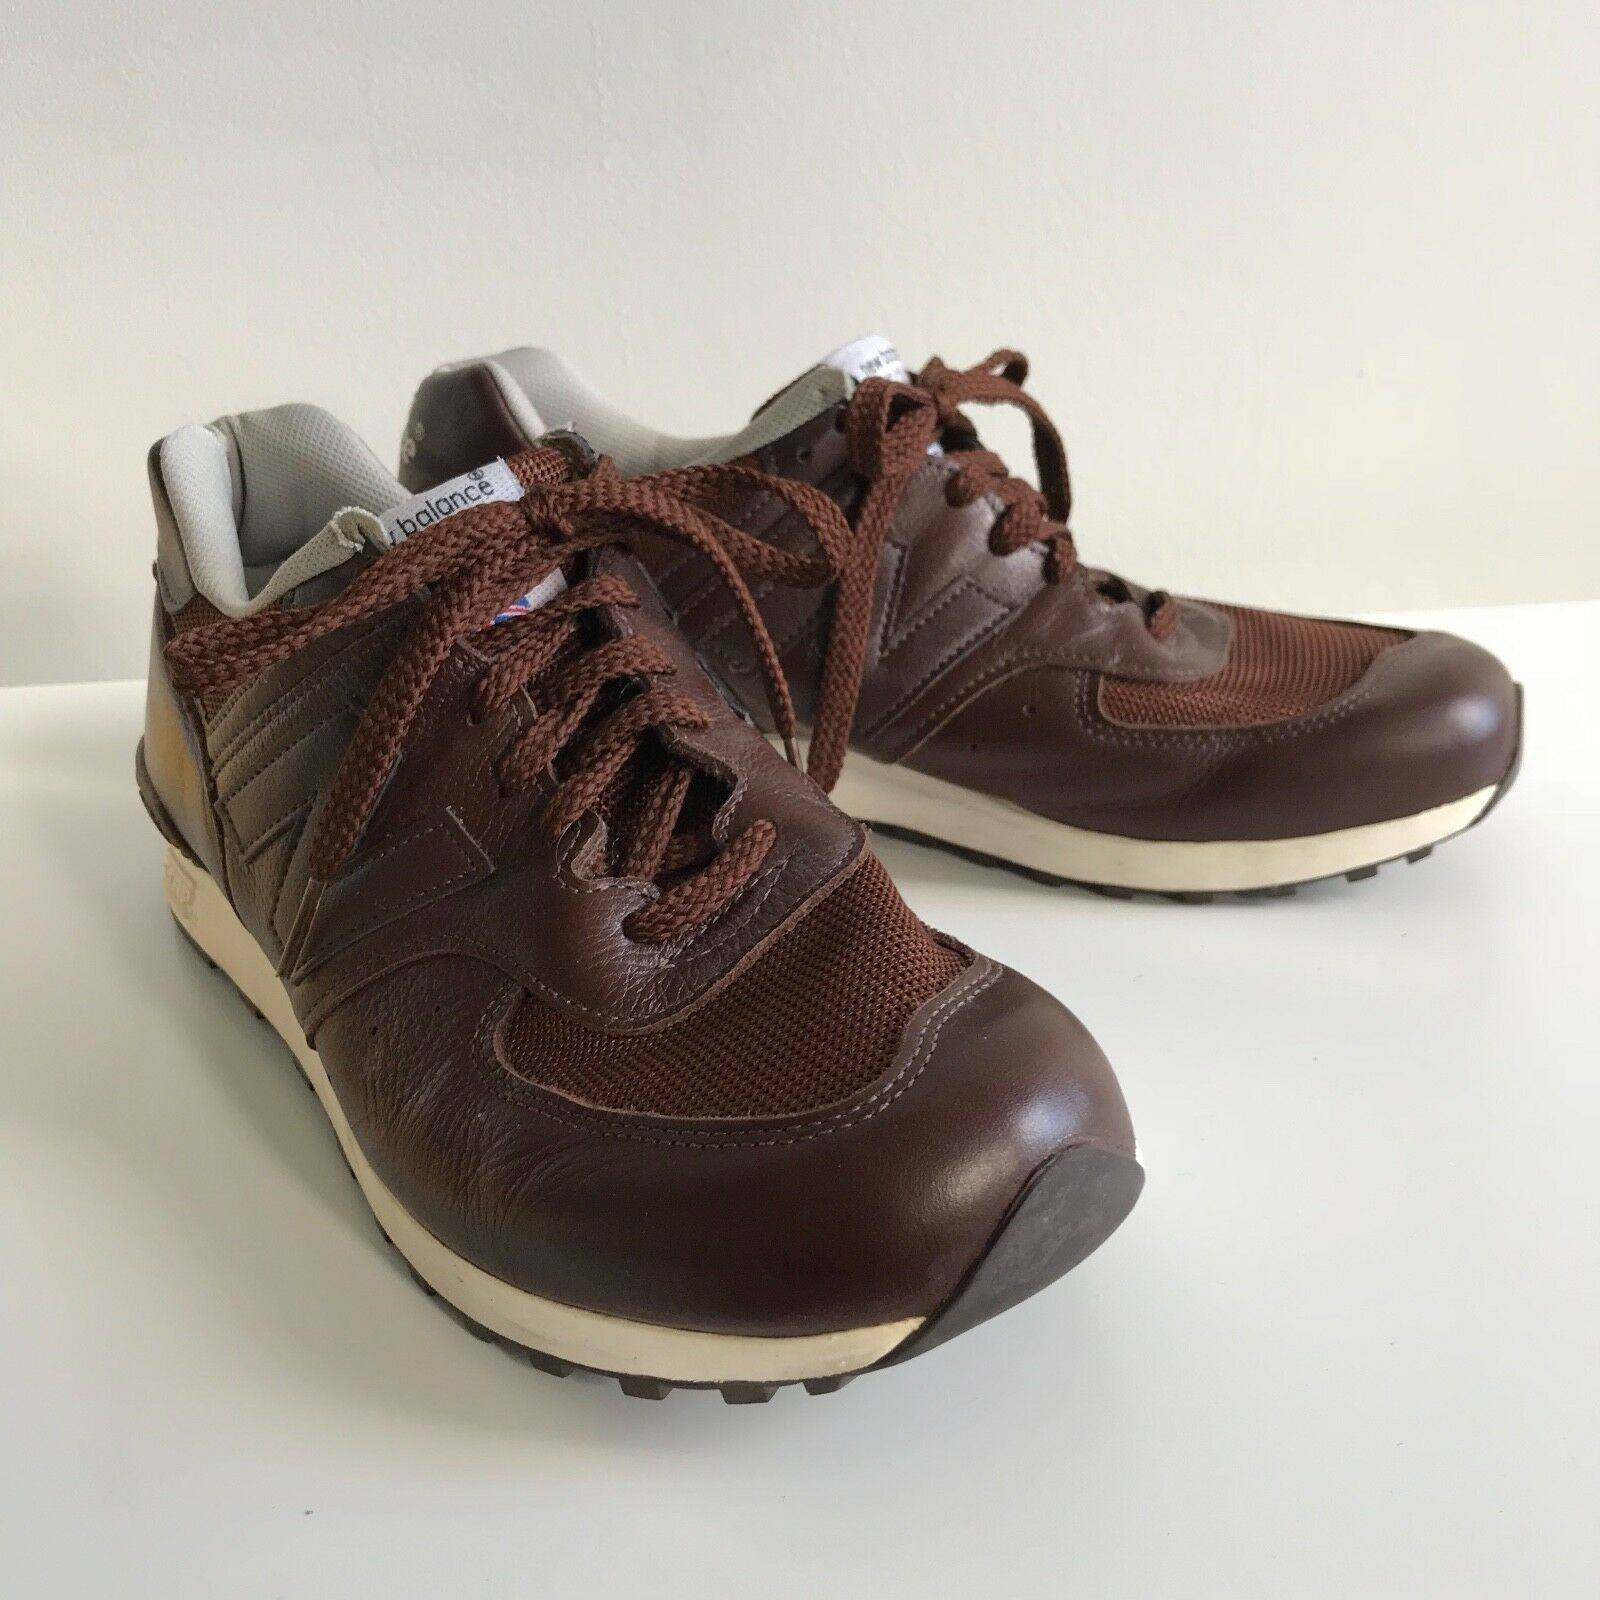 NEW BALANCE 576 Made in England Leather Uppers - Discreet Logo - SIZE US 9